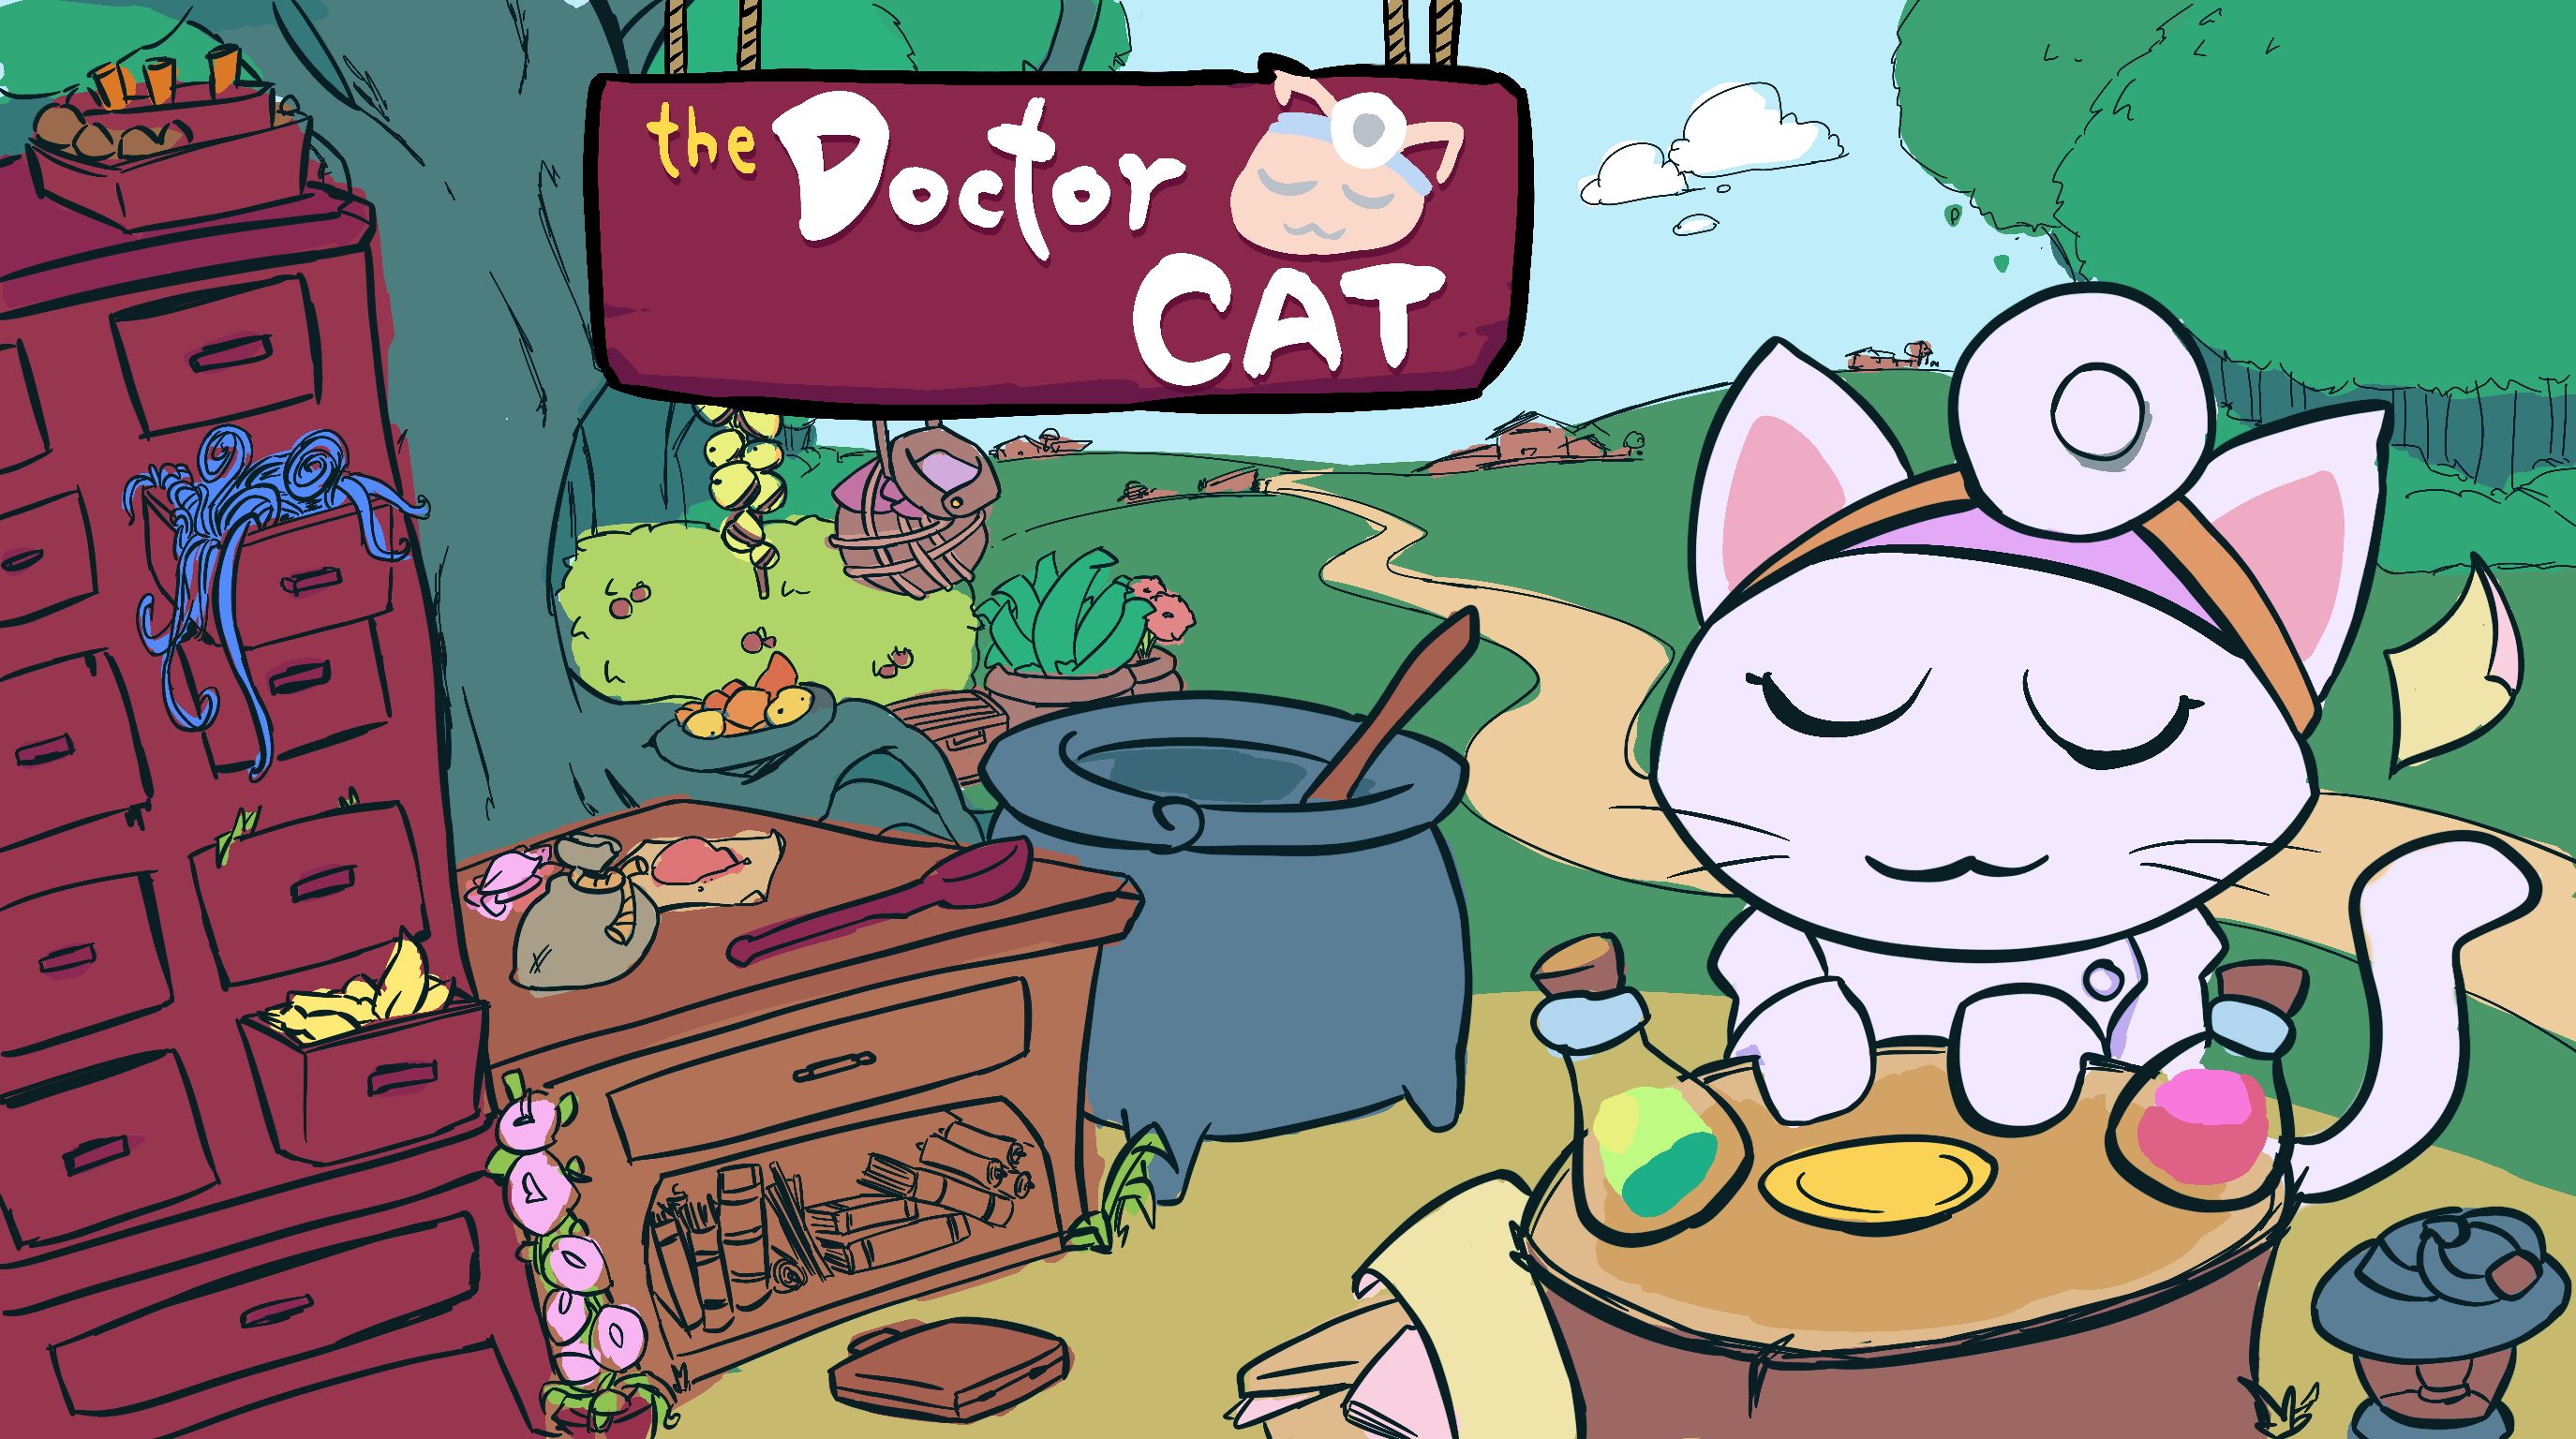 the Doctor CAT